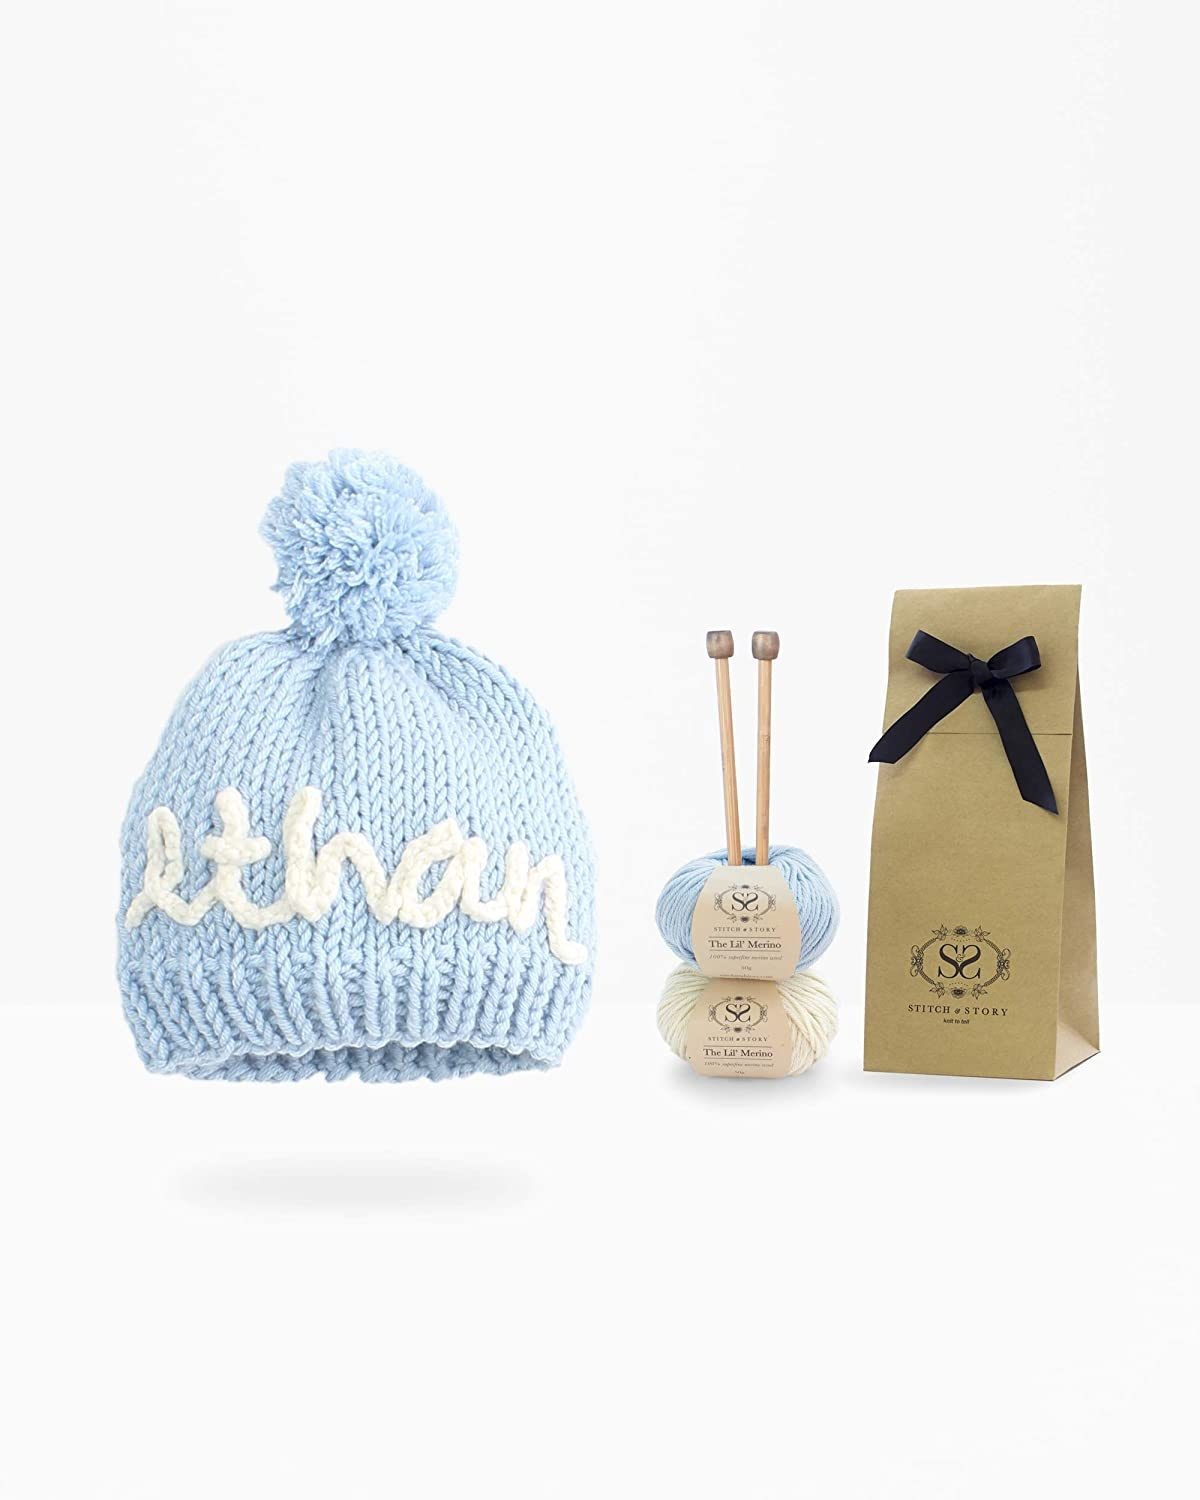 Stitch & Story Personalized Mini Hat Knitt - Blue